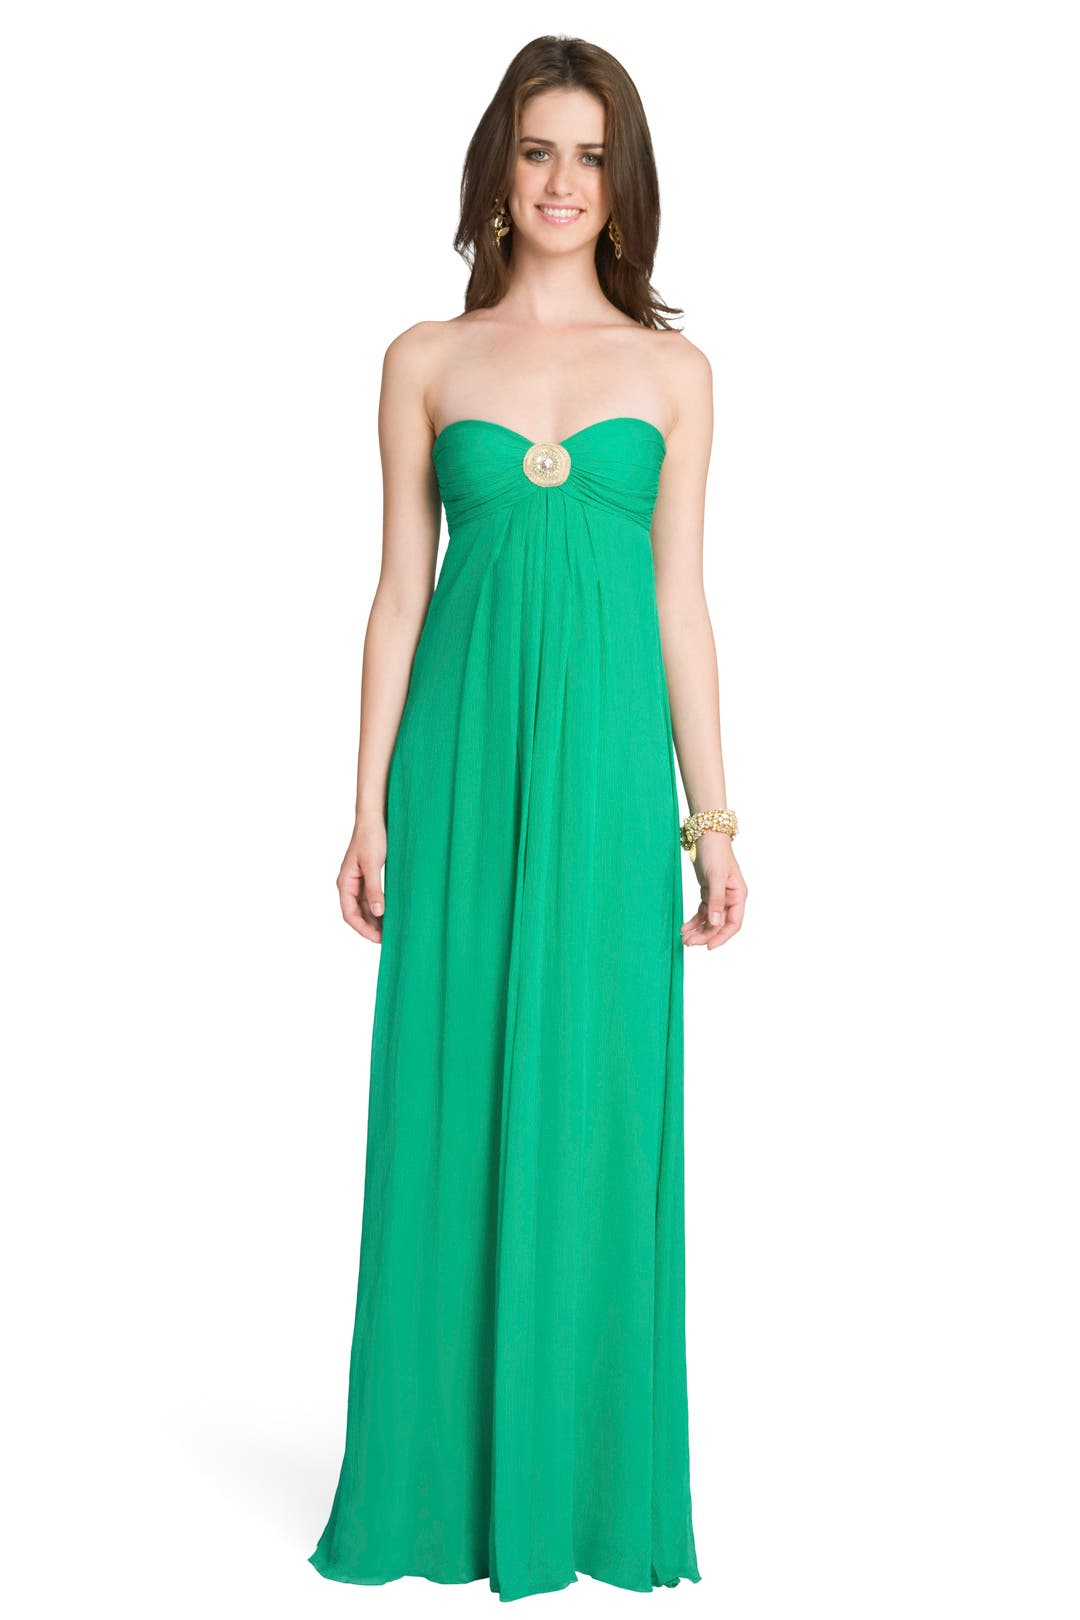 Emerald City Gown by Temperley London